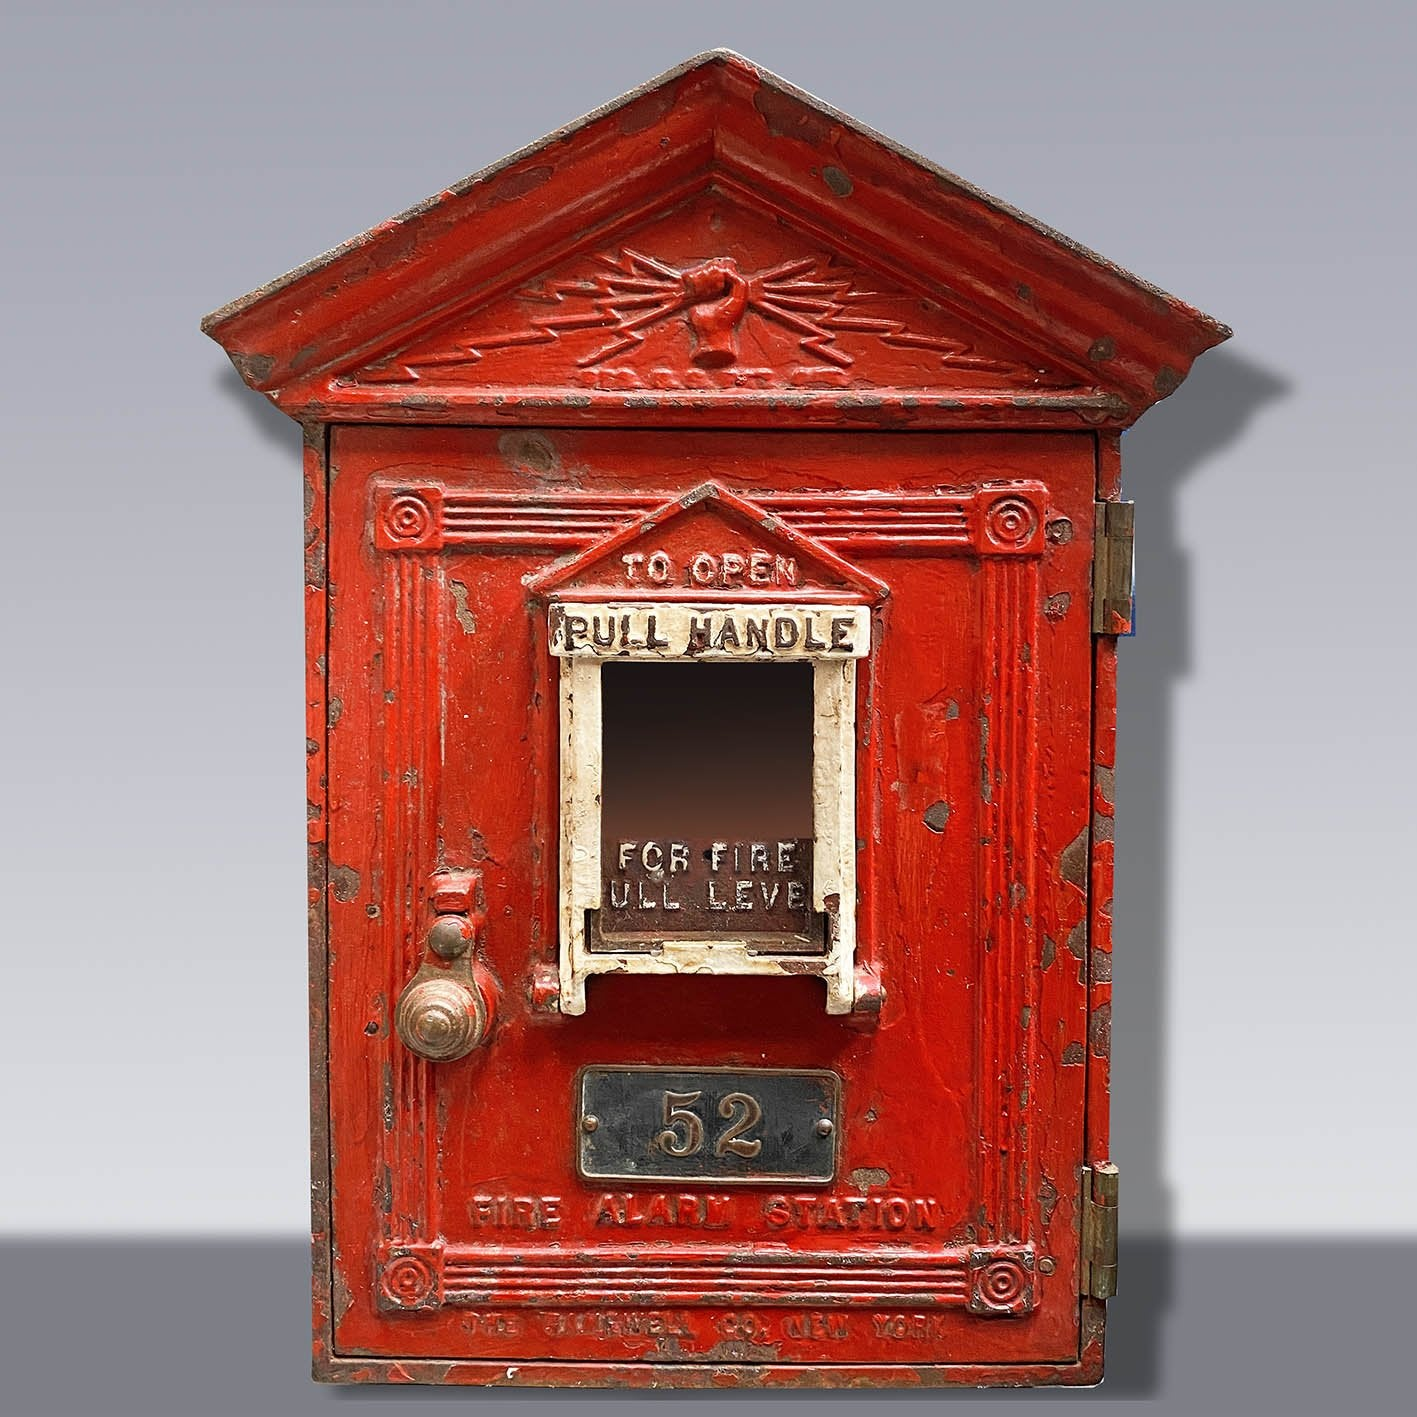 Vintage fire alarm box